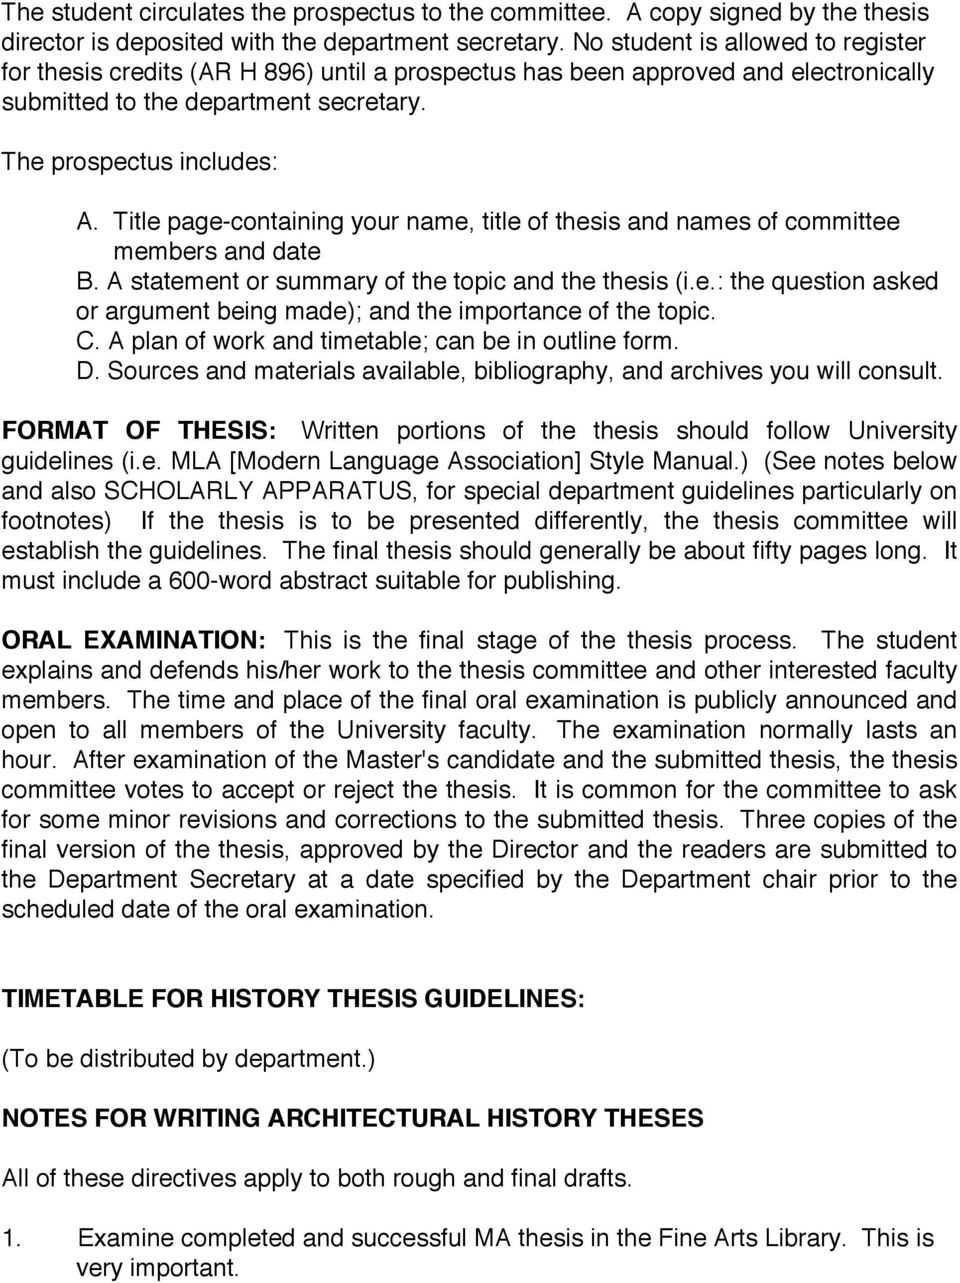 fgcu thesis guidelines